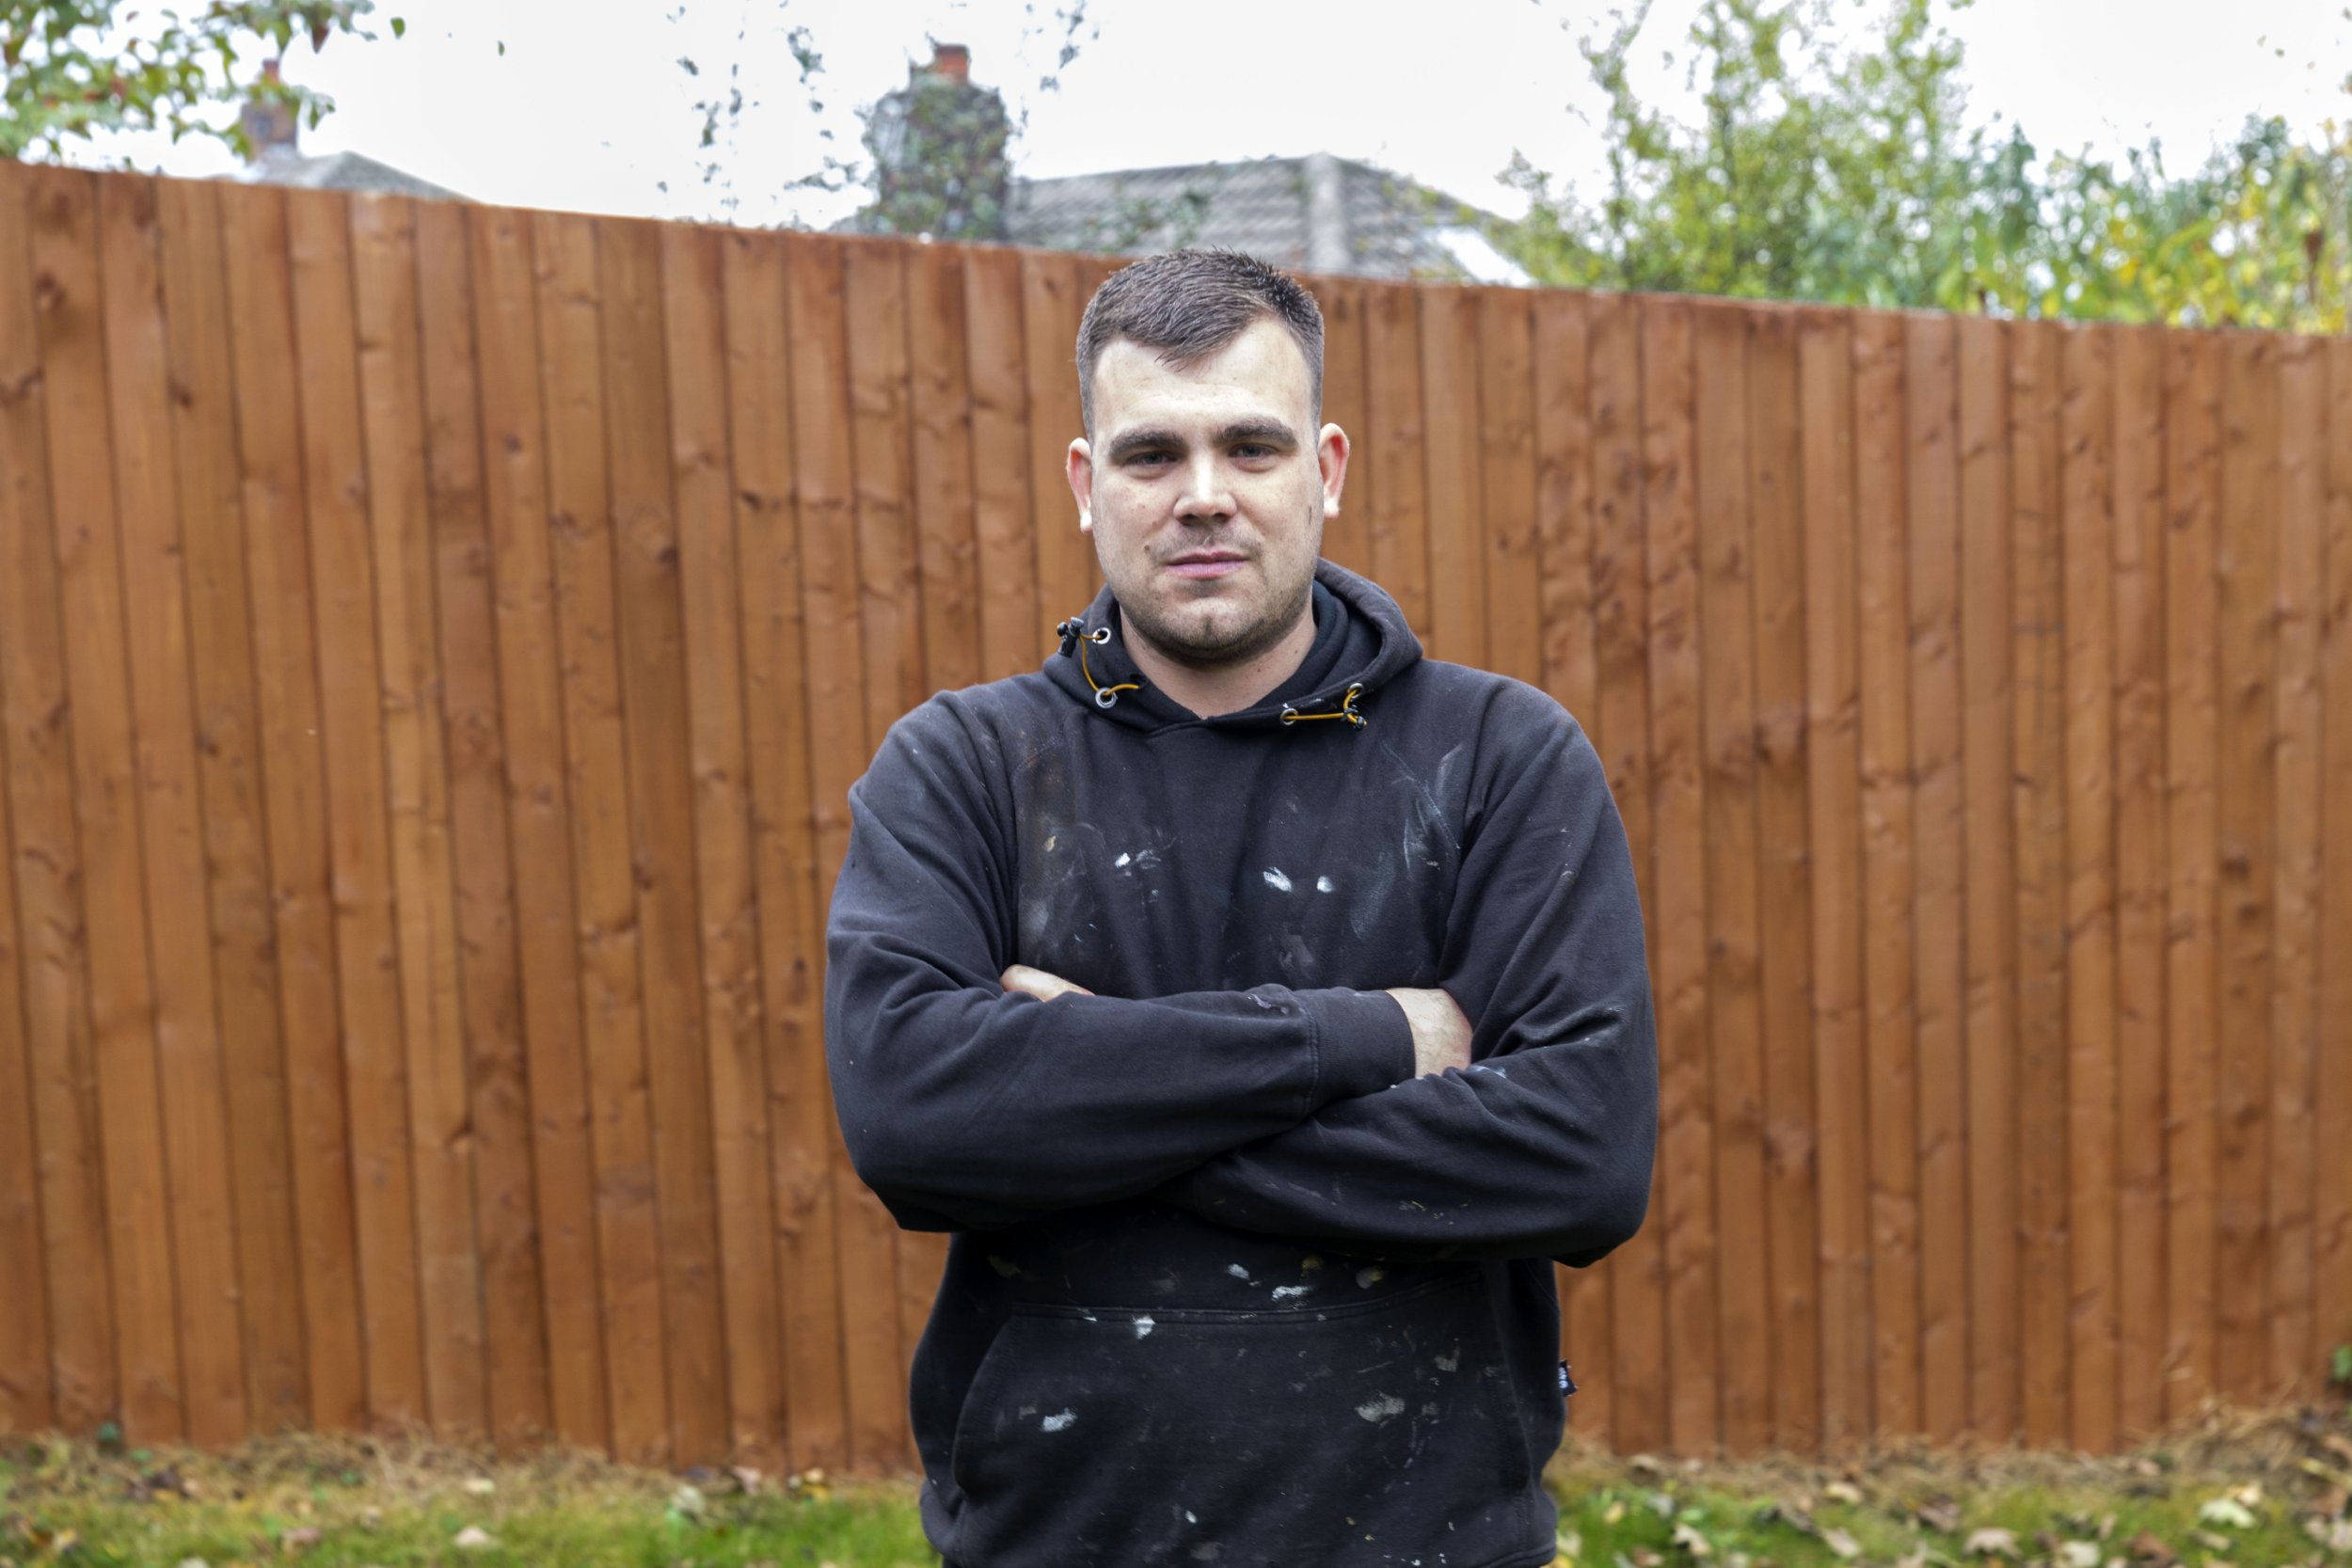 Outraged father of two, Thomas Goodall 27, was shocked to find out that that he was living next door to a convicted rapist. Thomas took matters into his own hands and erected a fence in October 2017. SWLEneighbour